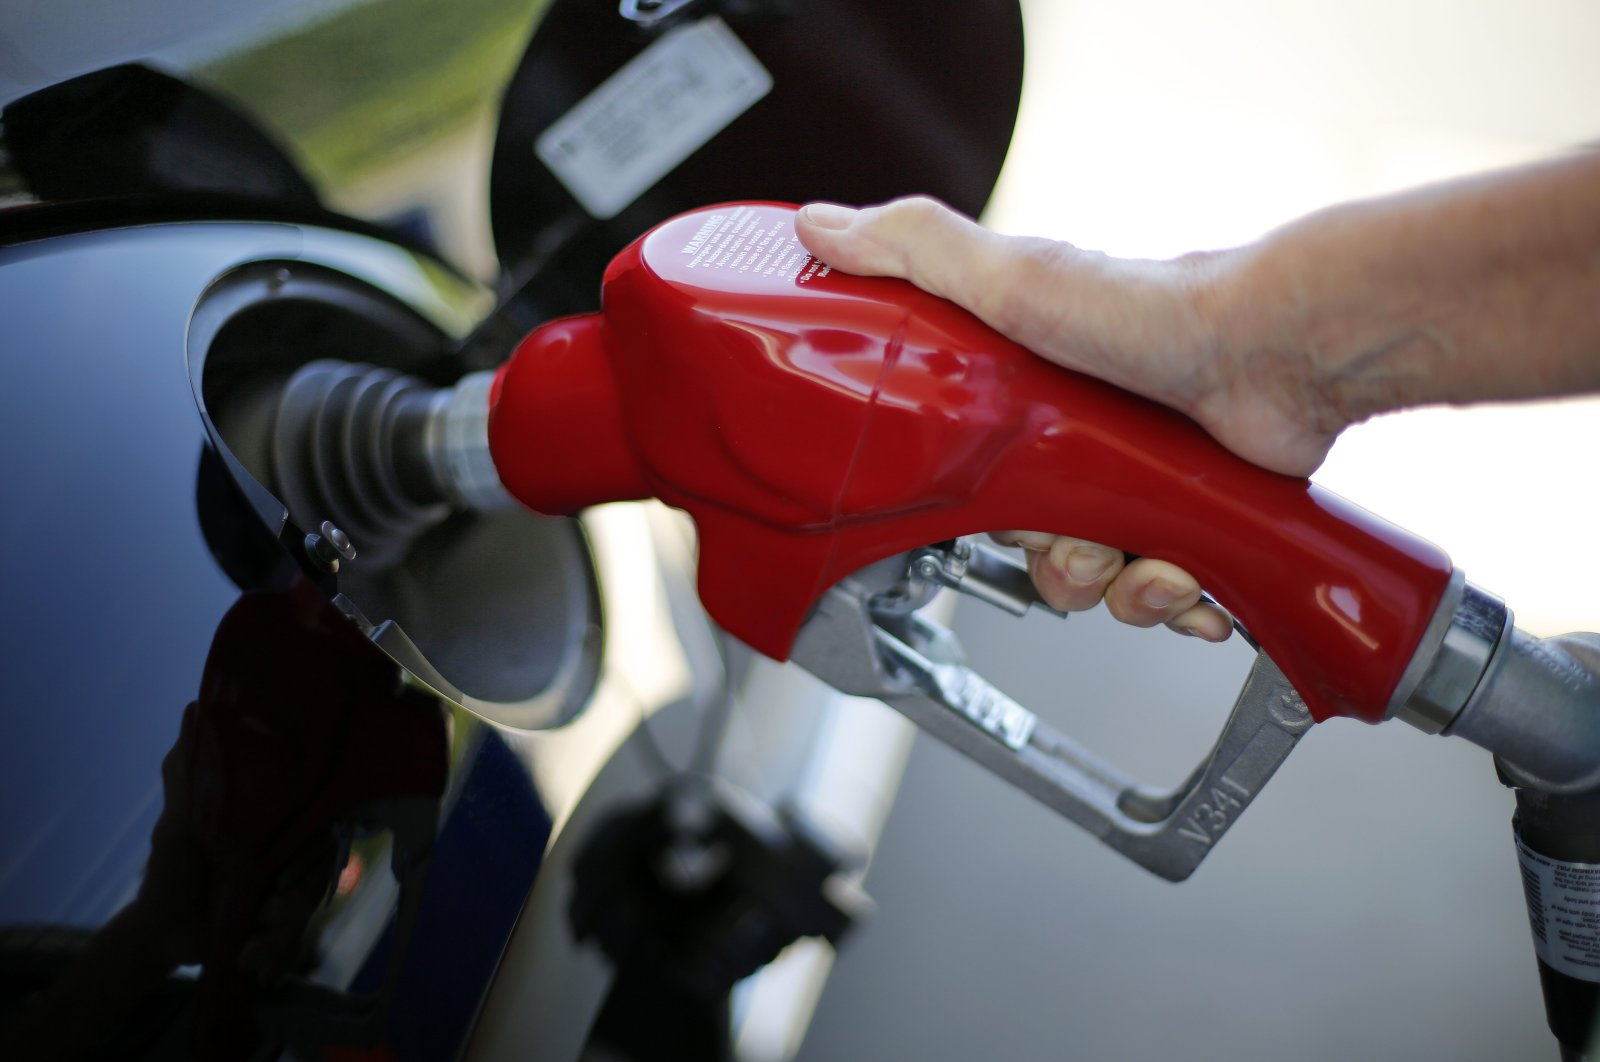 A woman fills her car with gasoline at a Costco gas station in Robinson Township, Pennsylvania, U.S., July 16, 2015. (AP Photo)